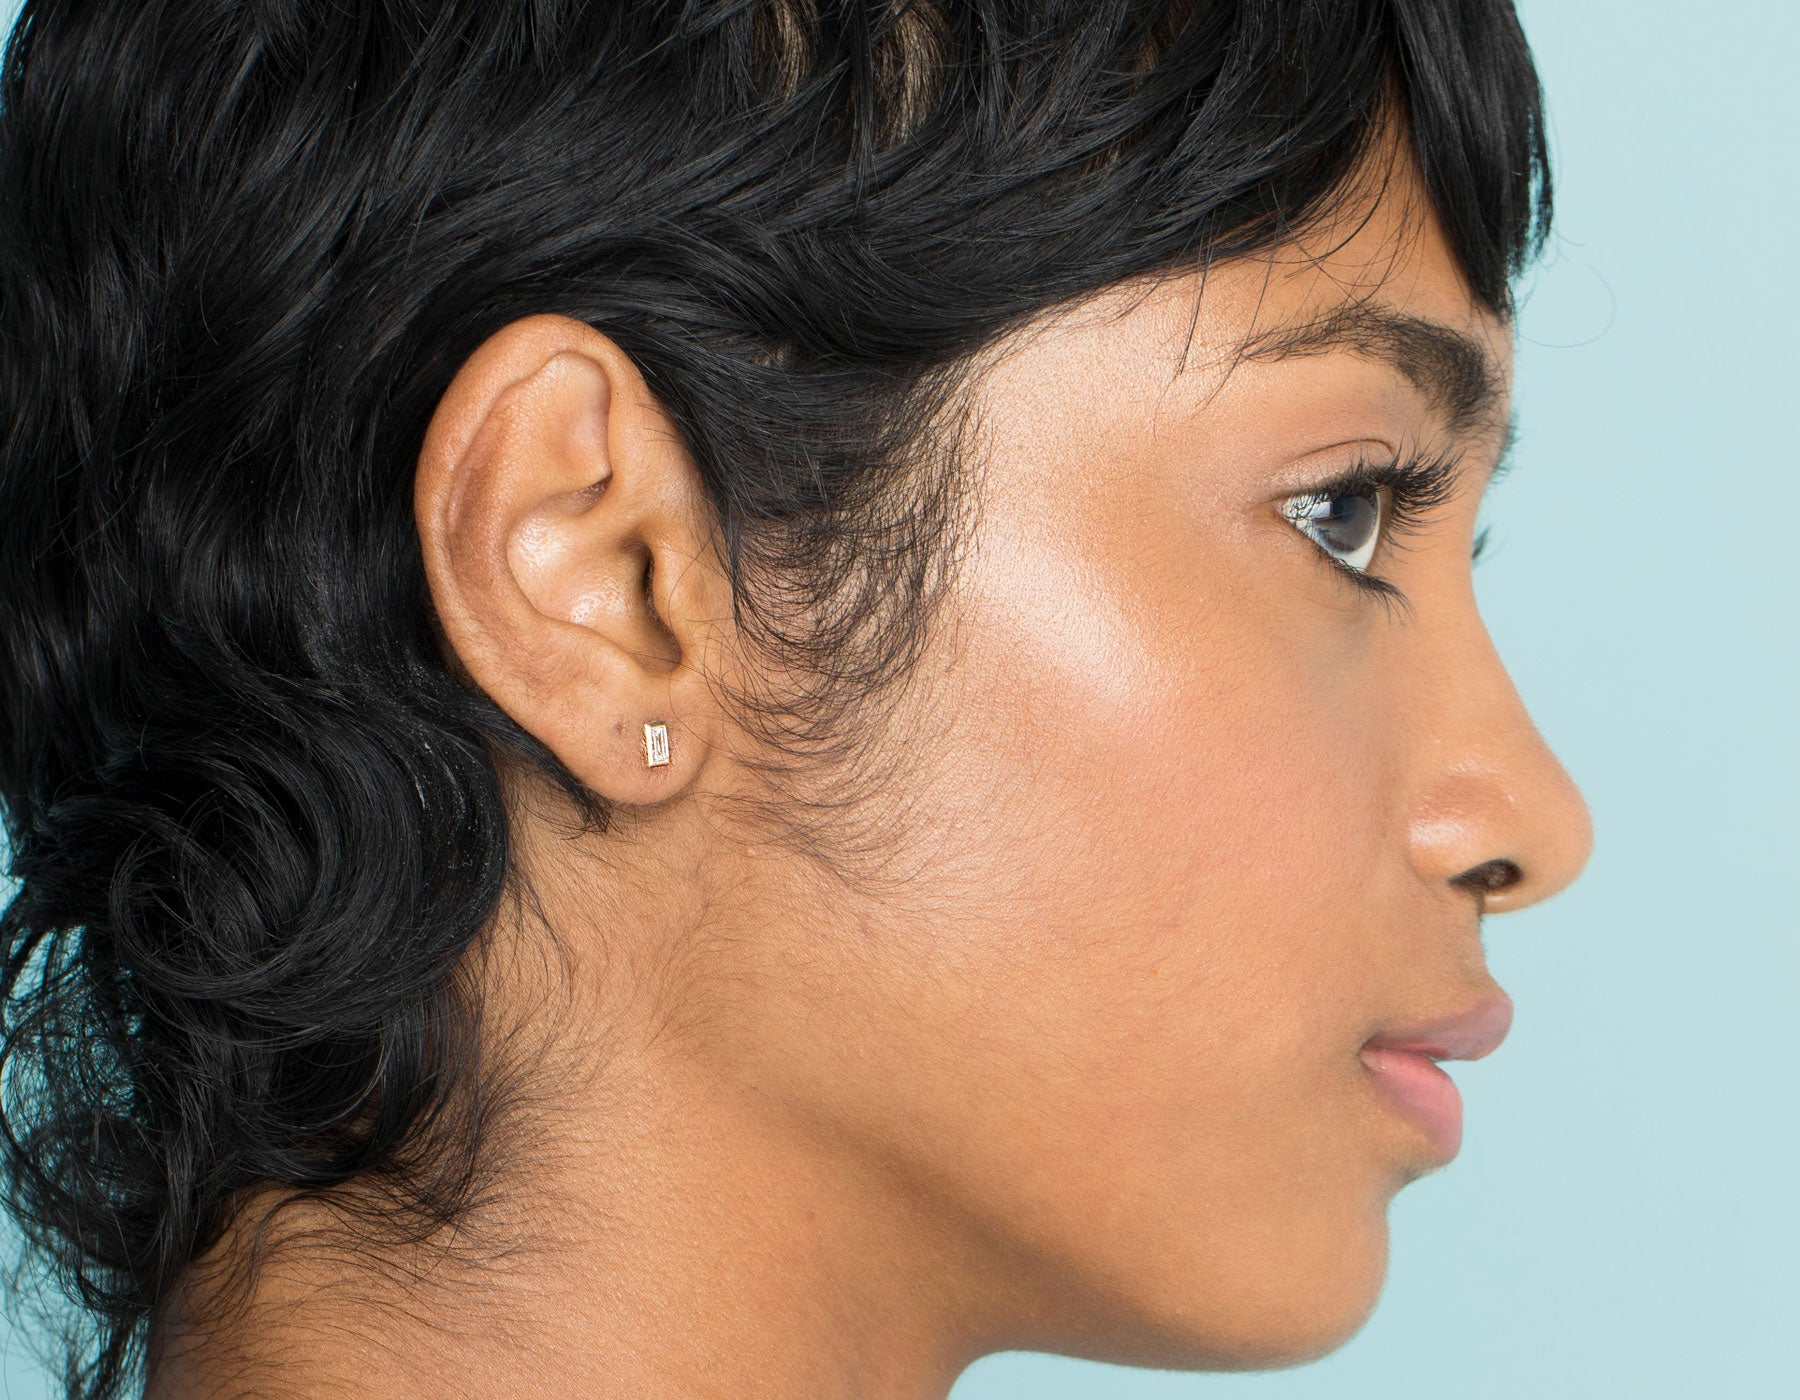 Model wearing dainty minimalist Baguette Diamond Bezel Stud Earrings by Vrai in 14k solid gold